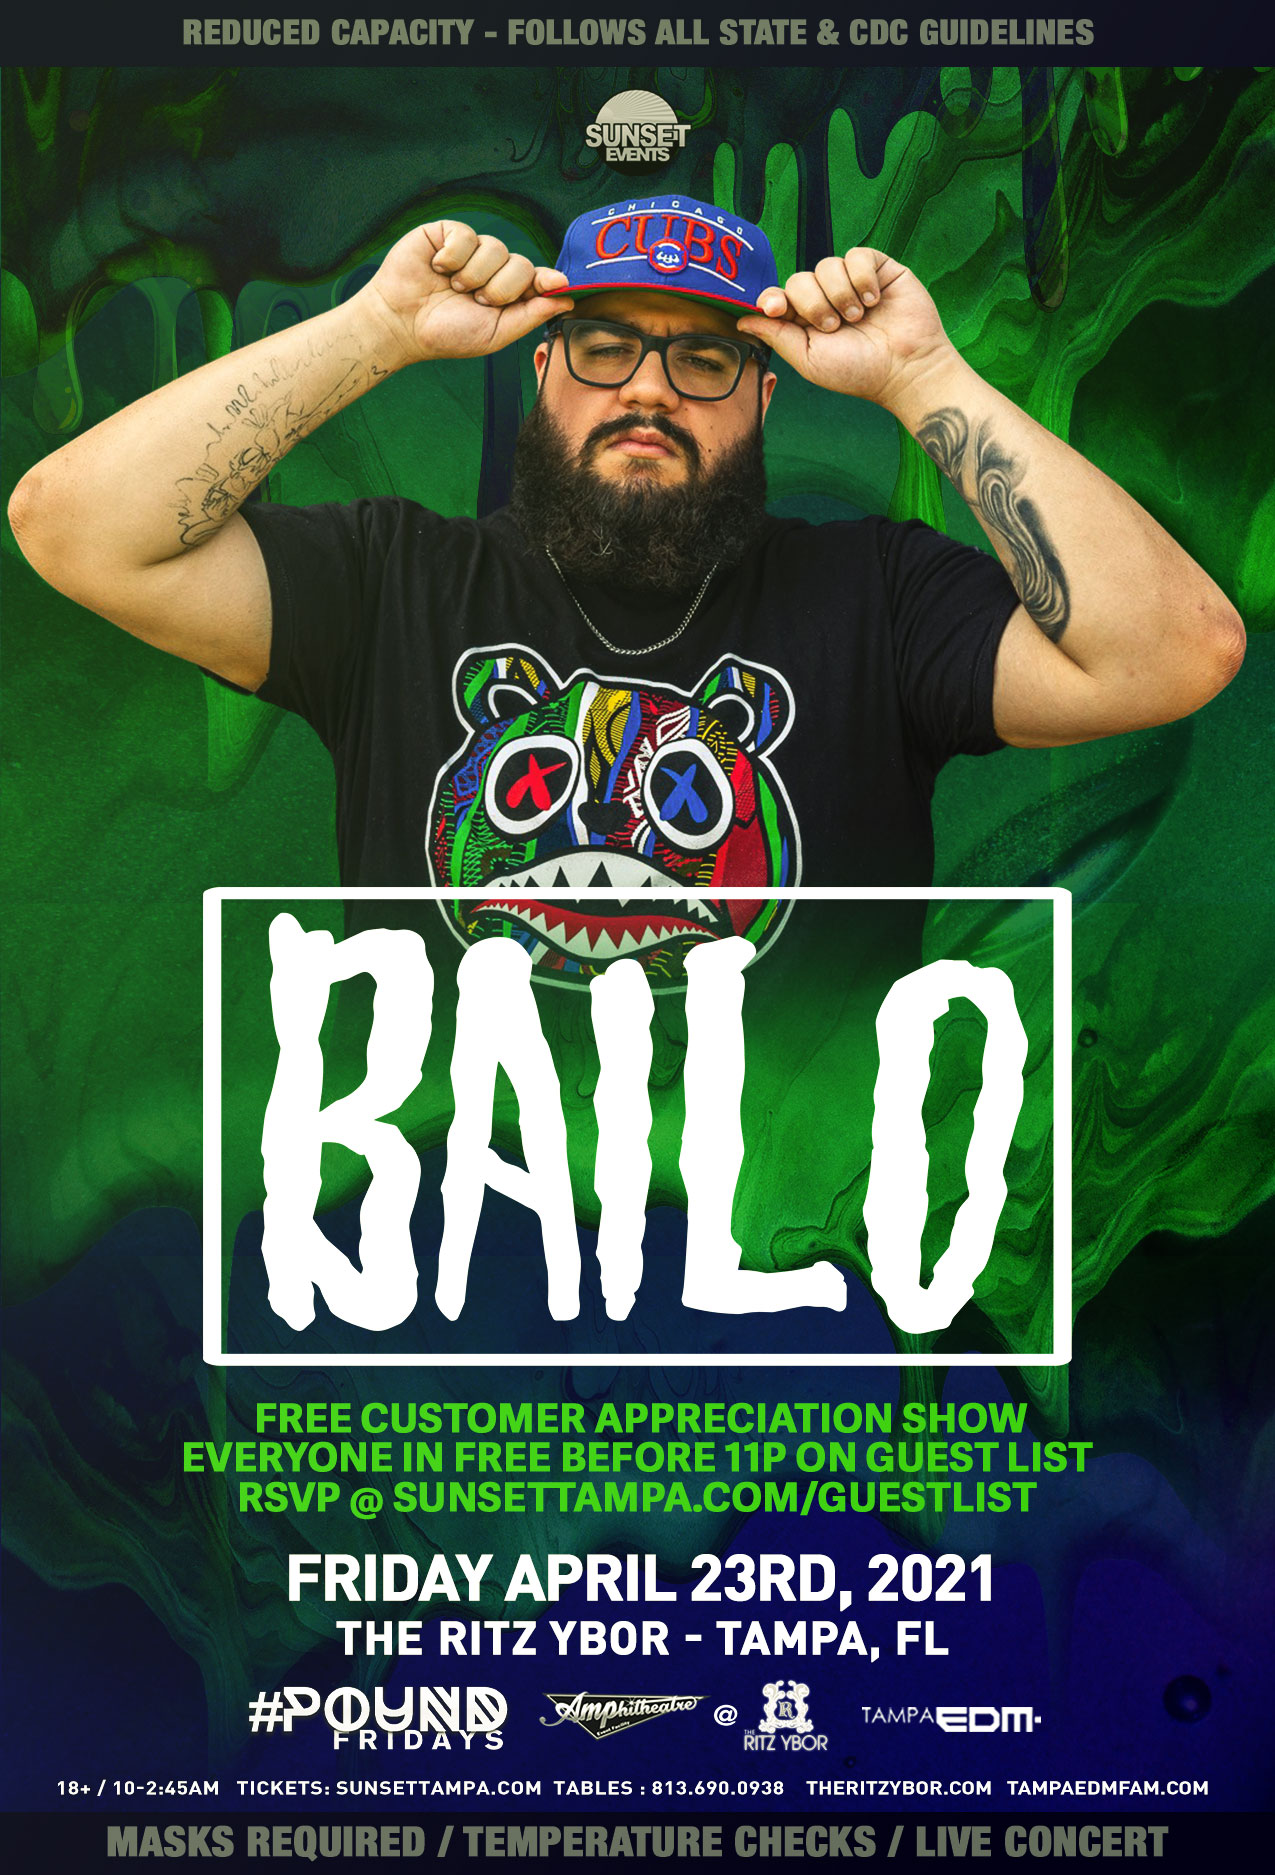 Bailo for #POUND Fridays at The RITZ Ybor – 4/23/2021